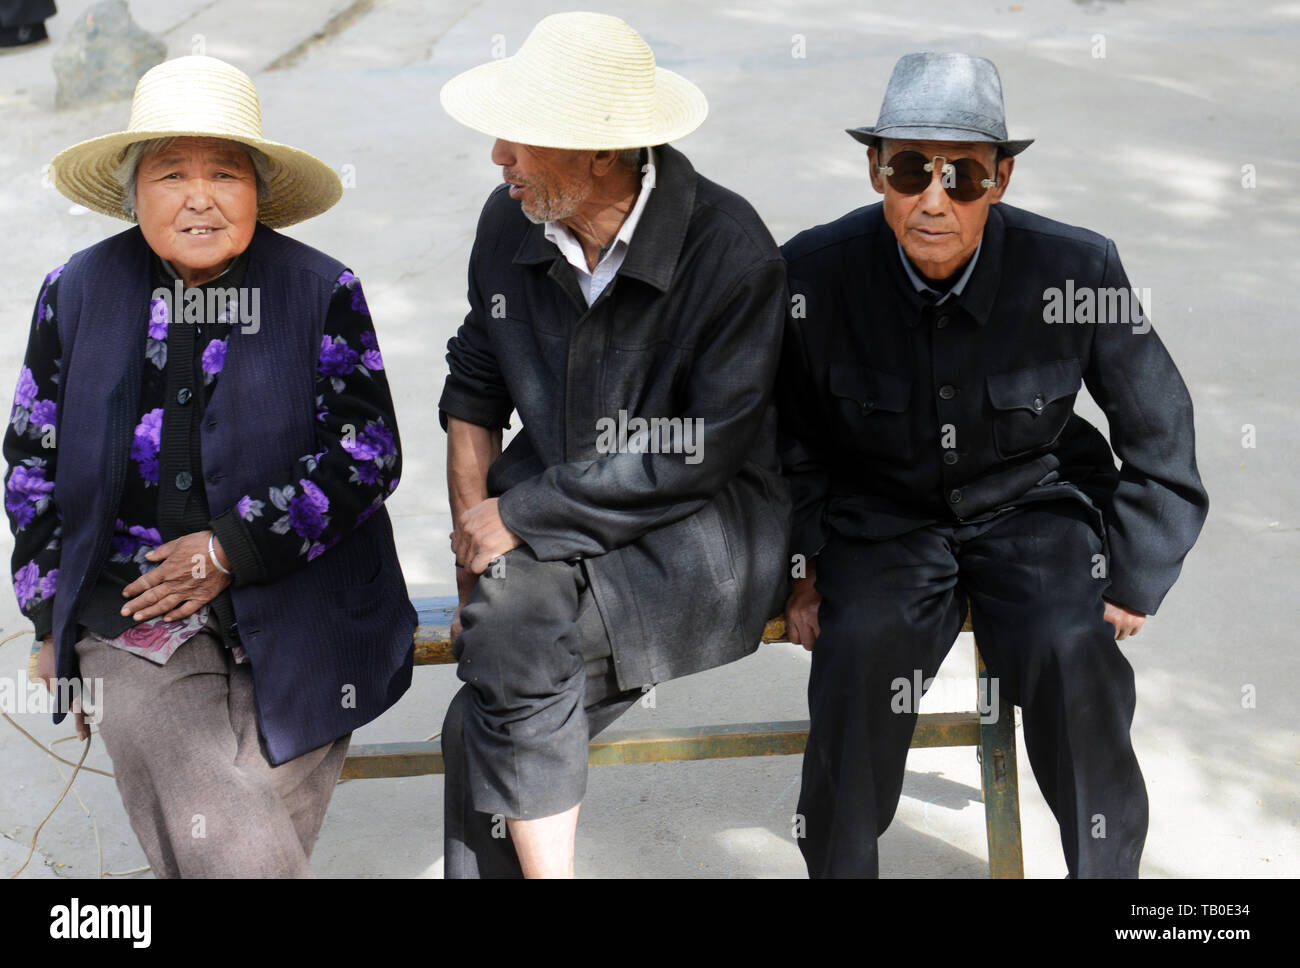 Terrific Elderly Chinese People Sitting On A Wooden Bench Stock Photo Bralicious Painted Fabric Chair Ideas Braliciousco